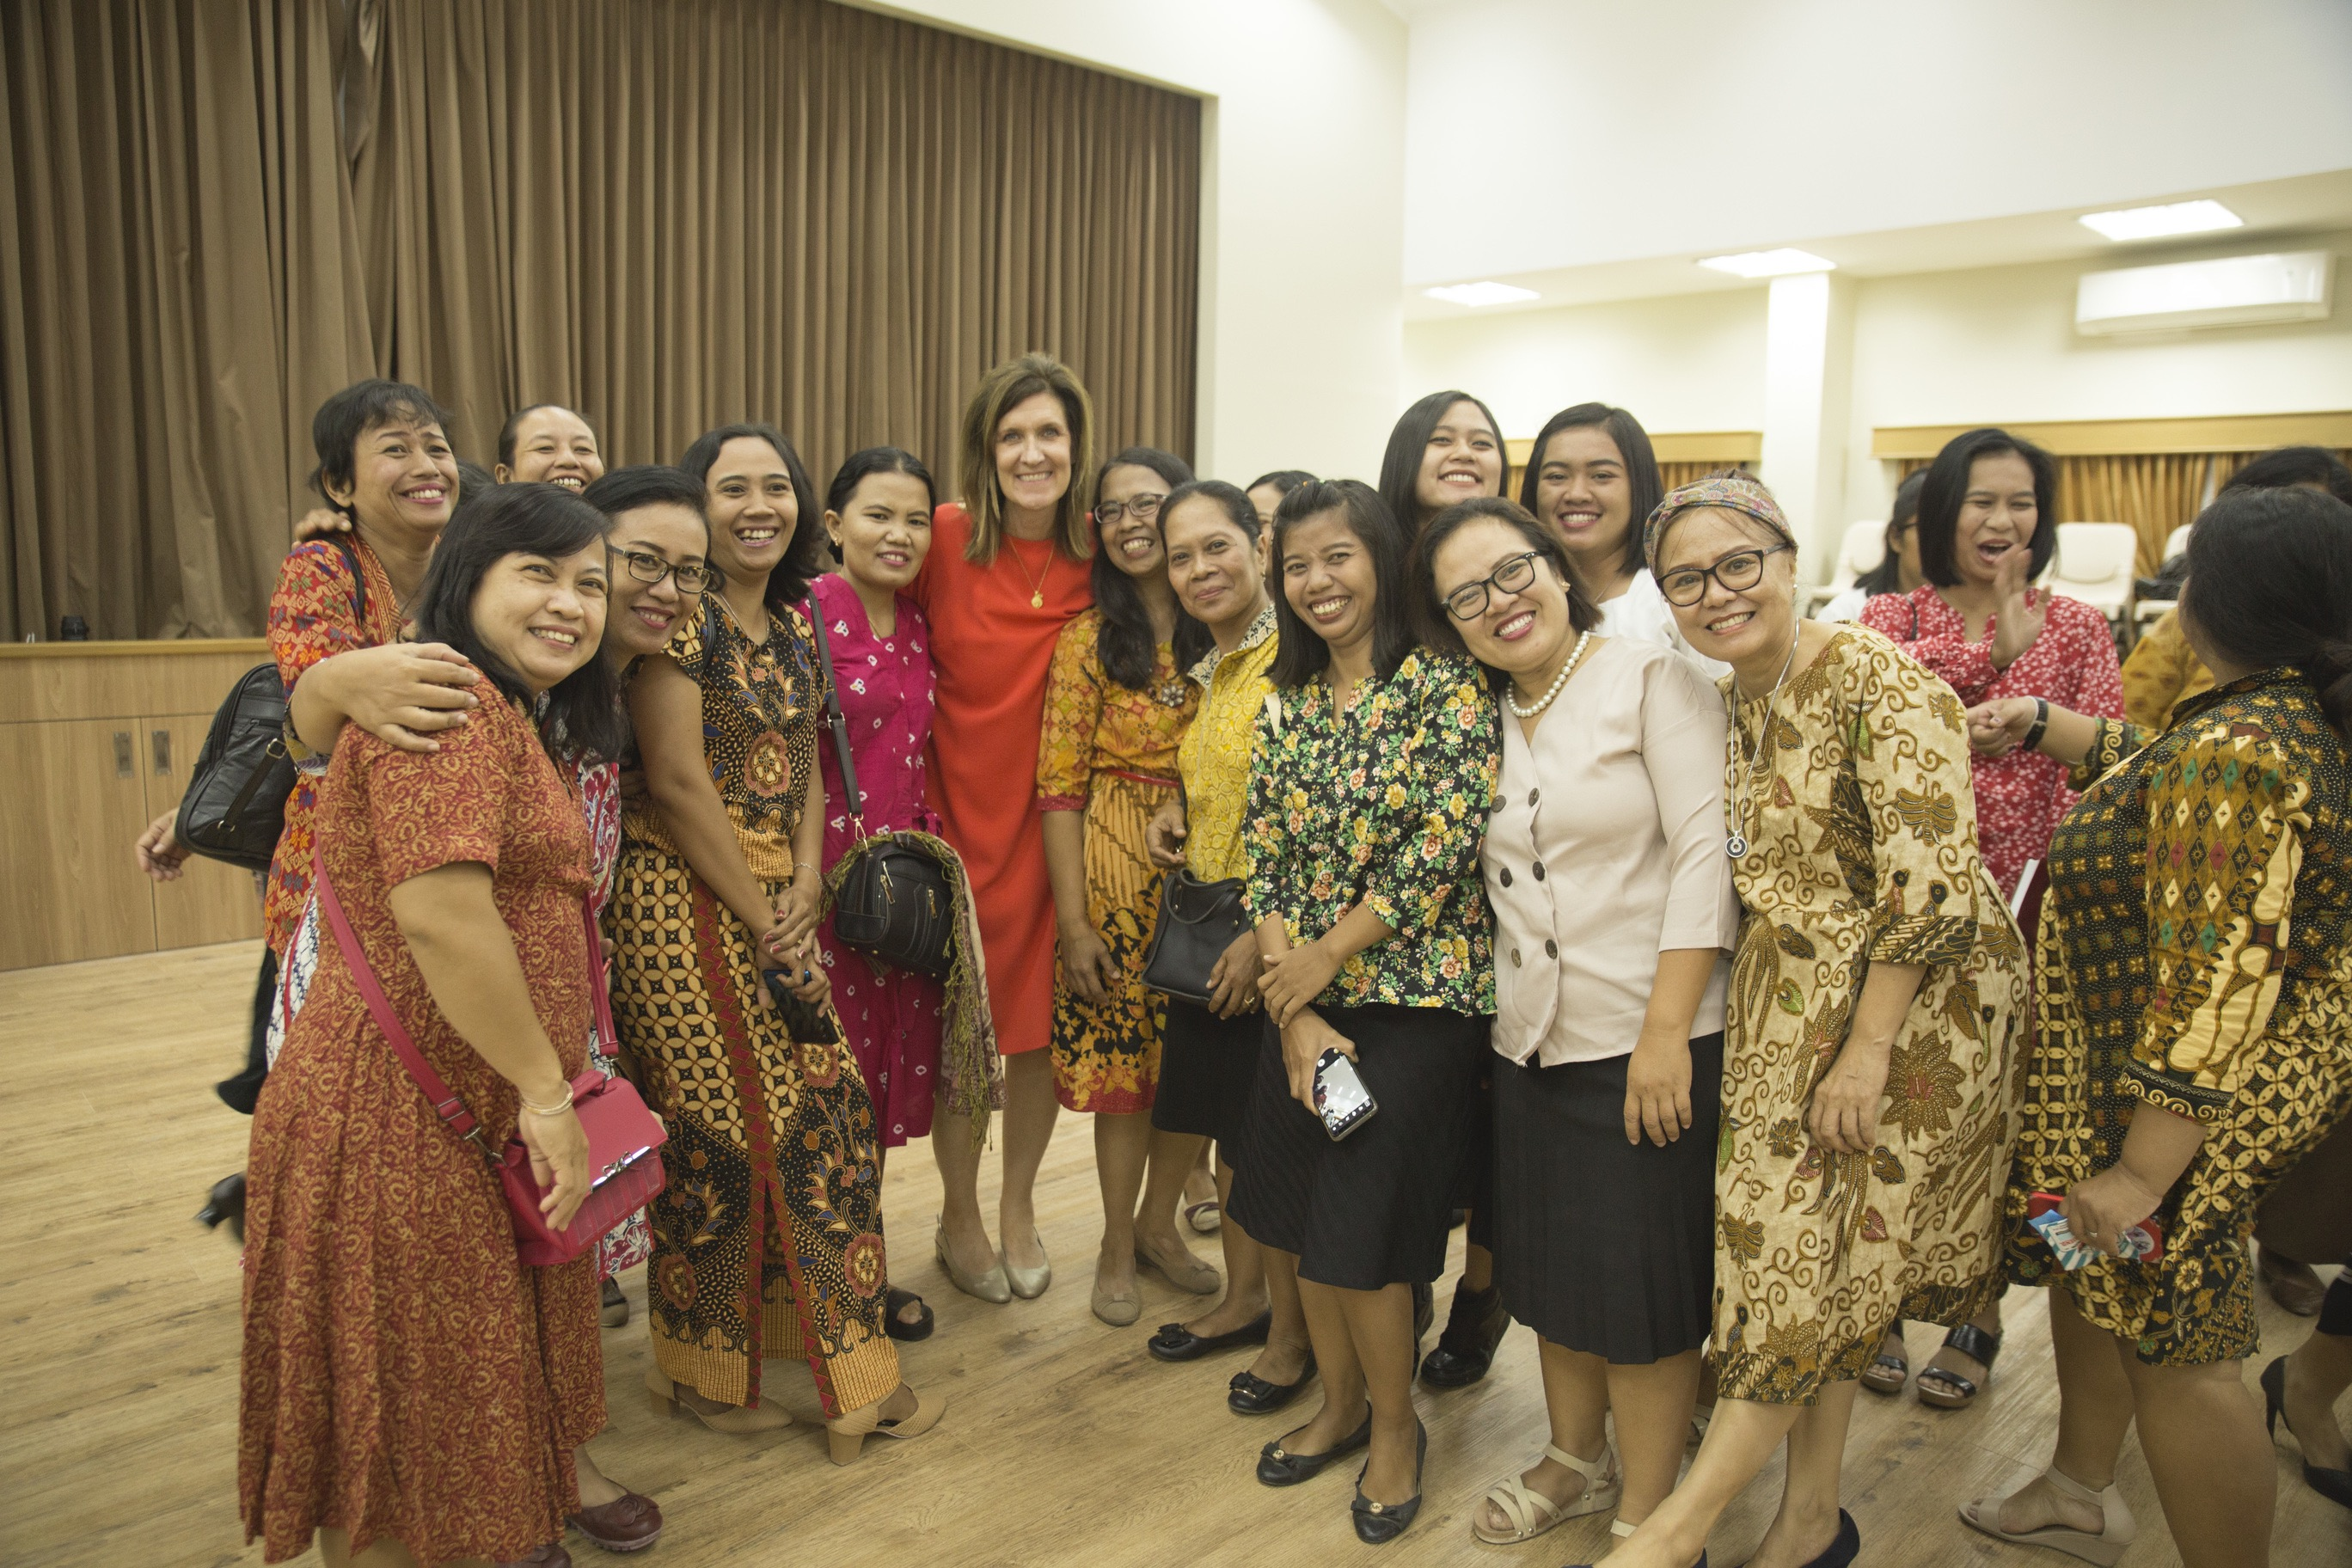 Sister Michelle D. Craig, first counselor in the Young Women general presidency, poses with members in Surakarta, Indonesia, following a devotional during a visit to the Asia Area of the Church from Aug. 17 to 24, 2019.